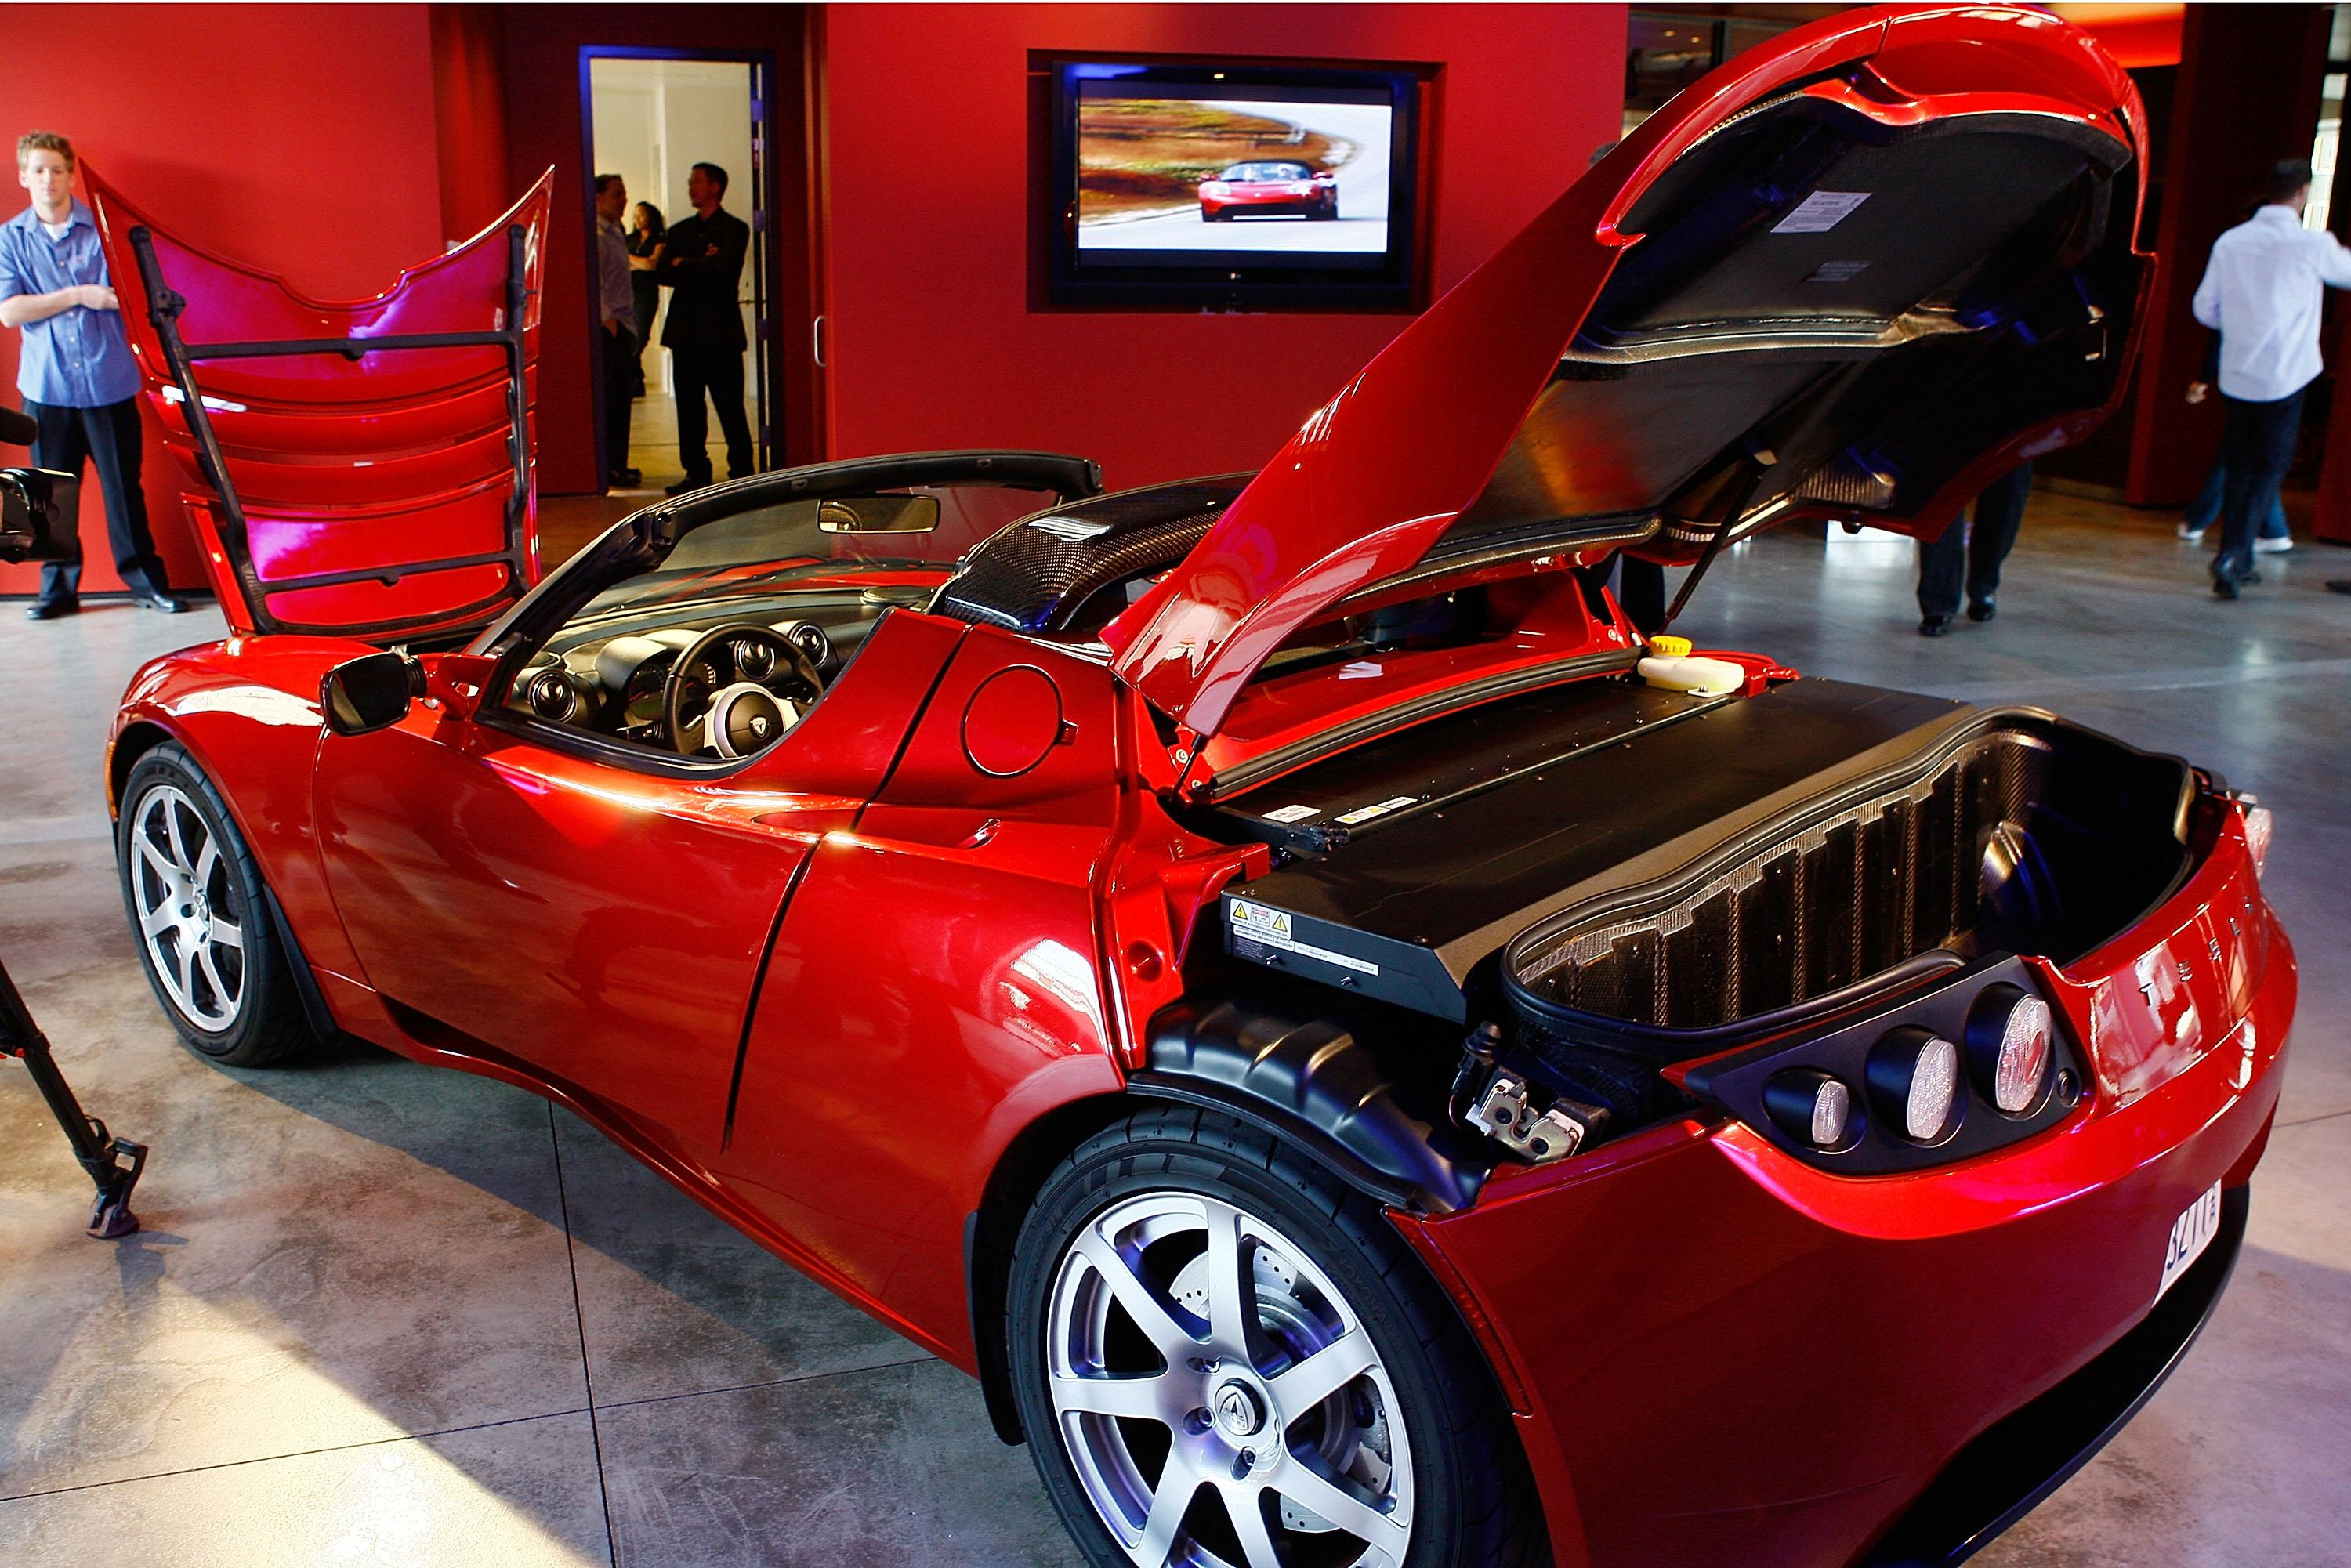 Tesla Roadster 2020 Specs Video Shows Impressive Speed And